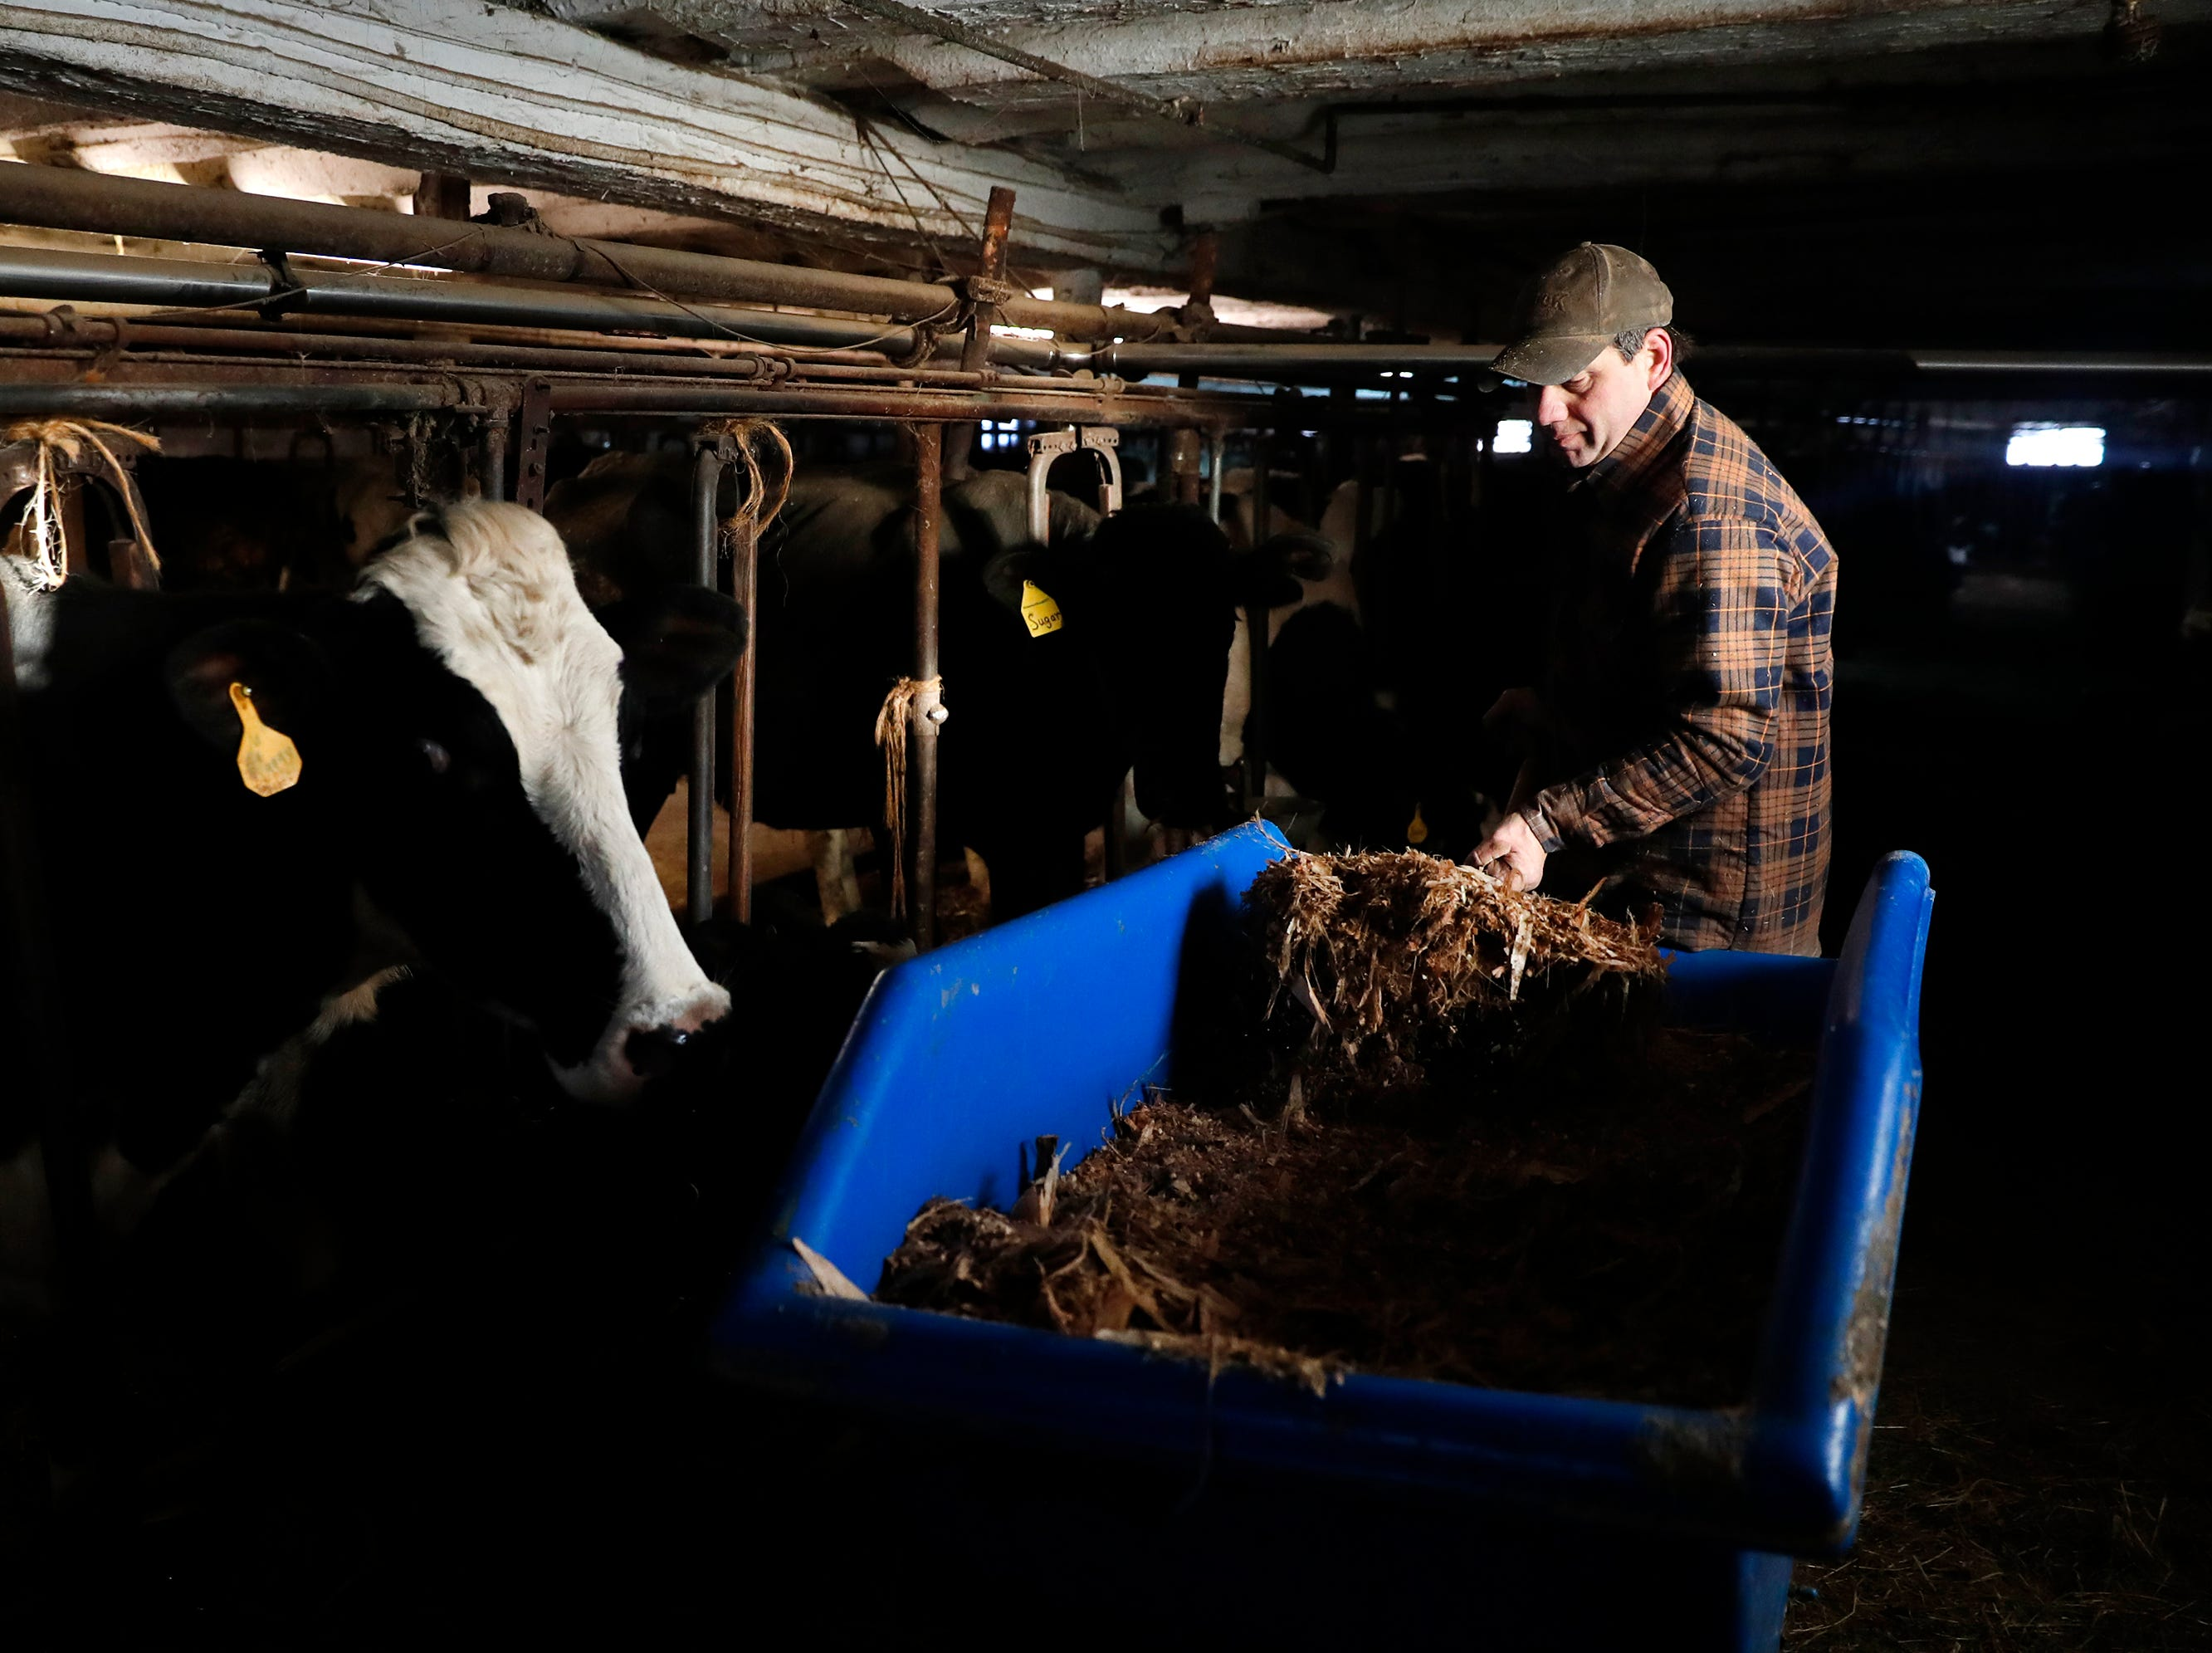 Russell Rieckmann, son of farm owner John Rieckmann, feeds their cows before milking Wednesday Feb. 13, 2019, in Fremont, Wis.Danny Damiani/USA TODAY NETWORK-Wisconsin